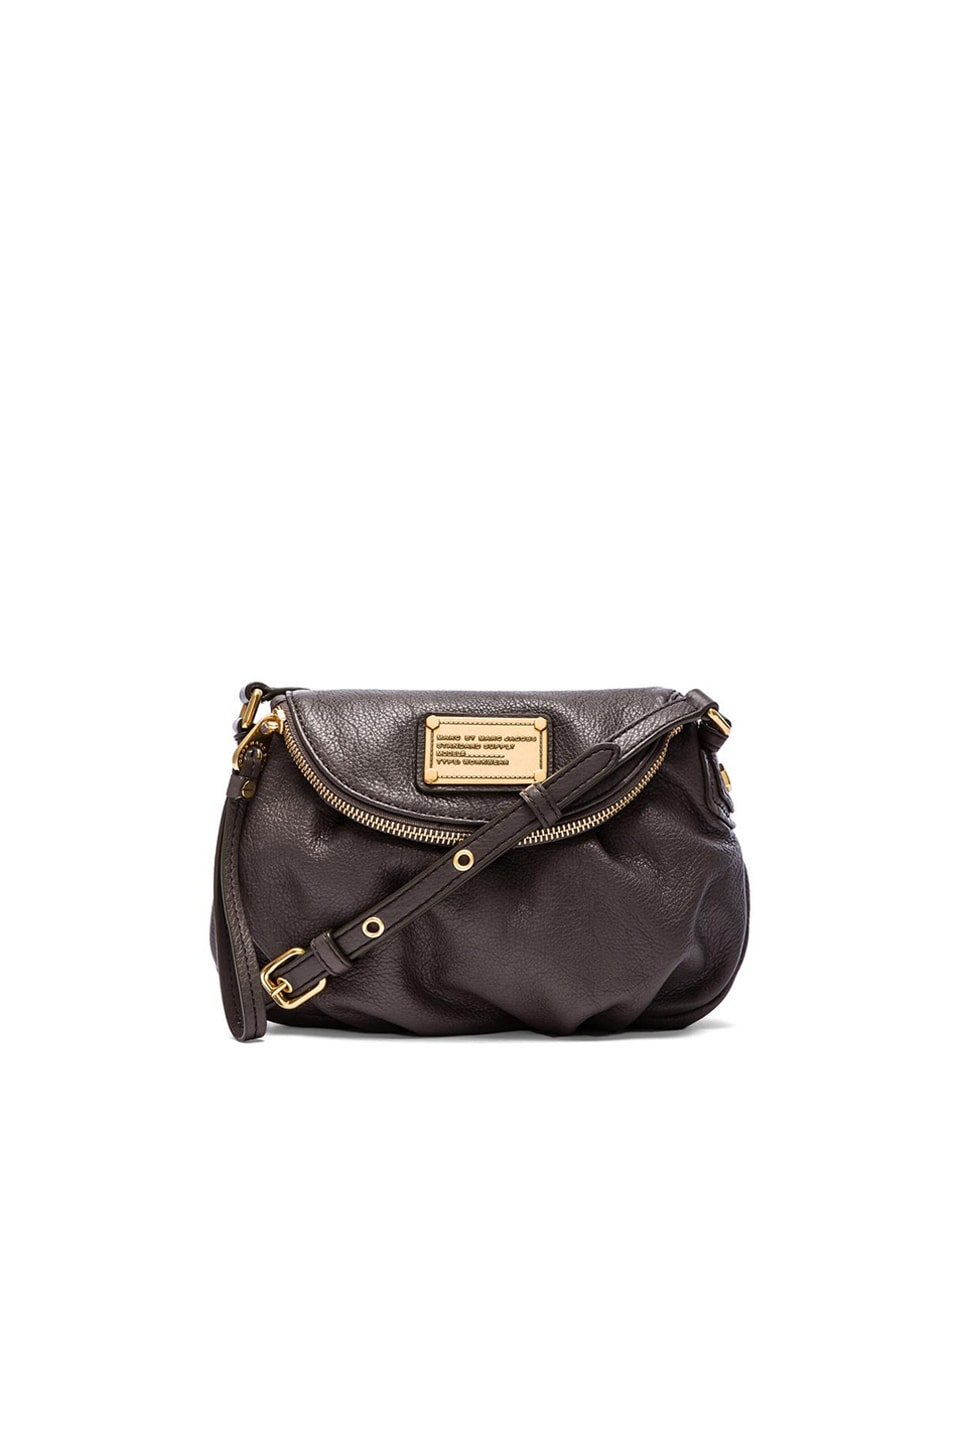 Marc by Marc Jacobs Classic Q Mini Natasha in Faded Aluminum